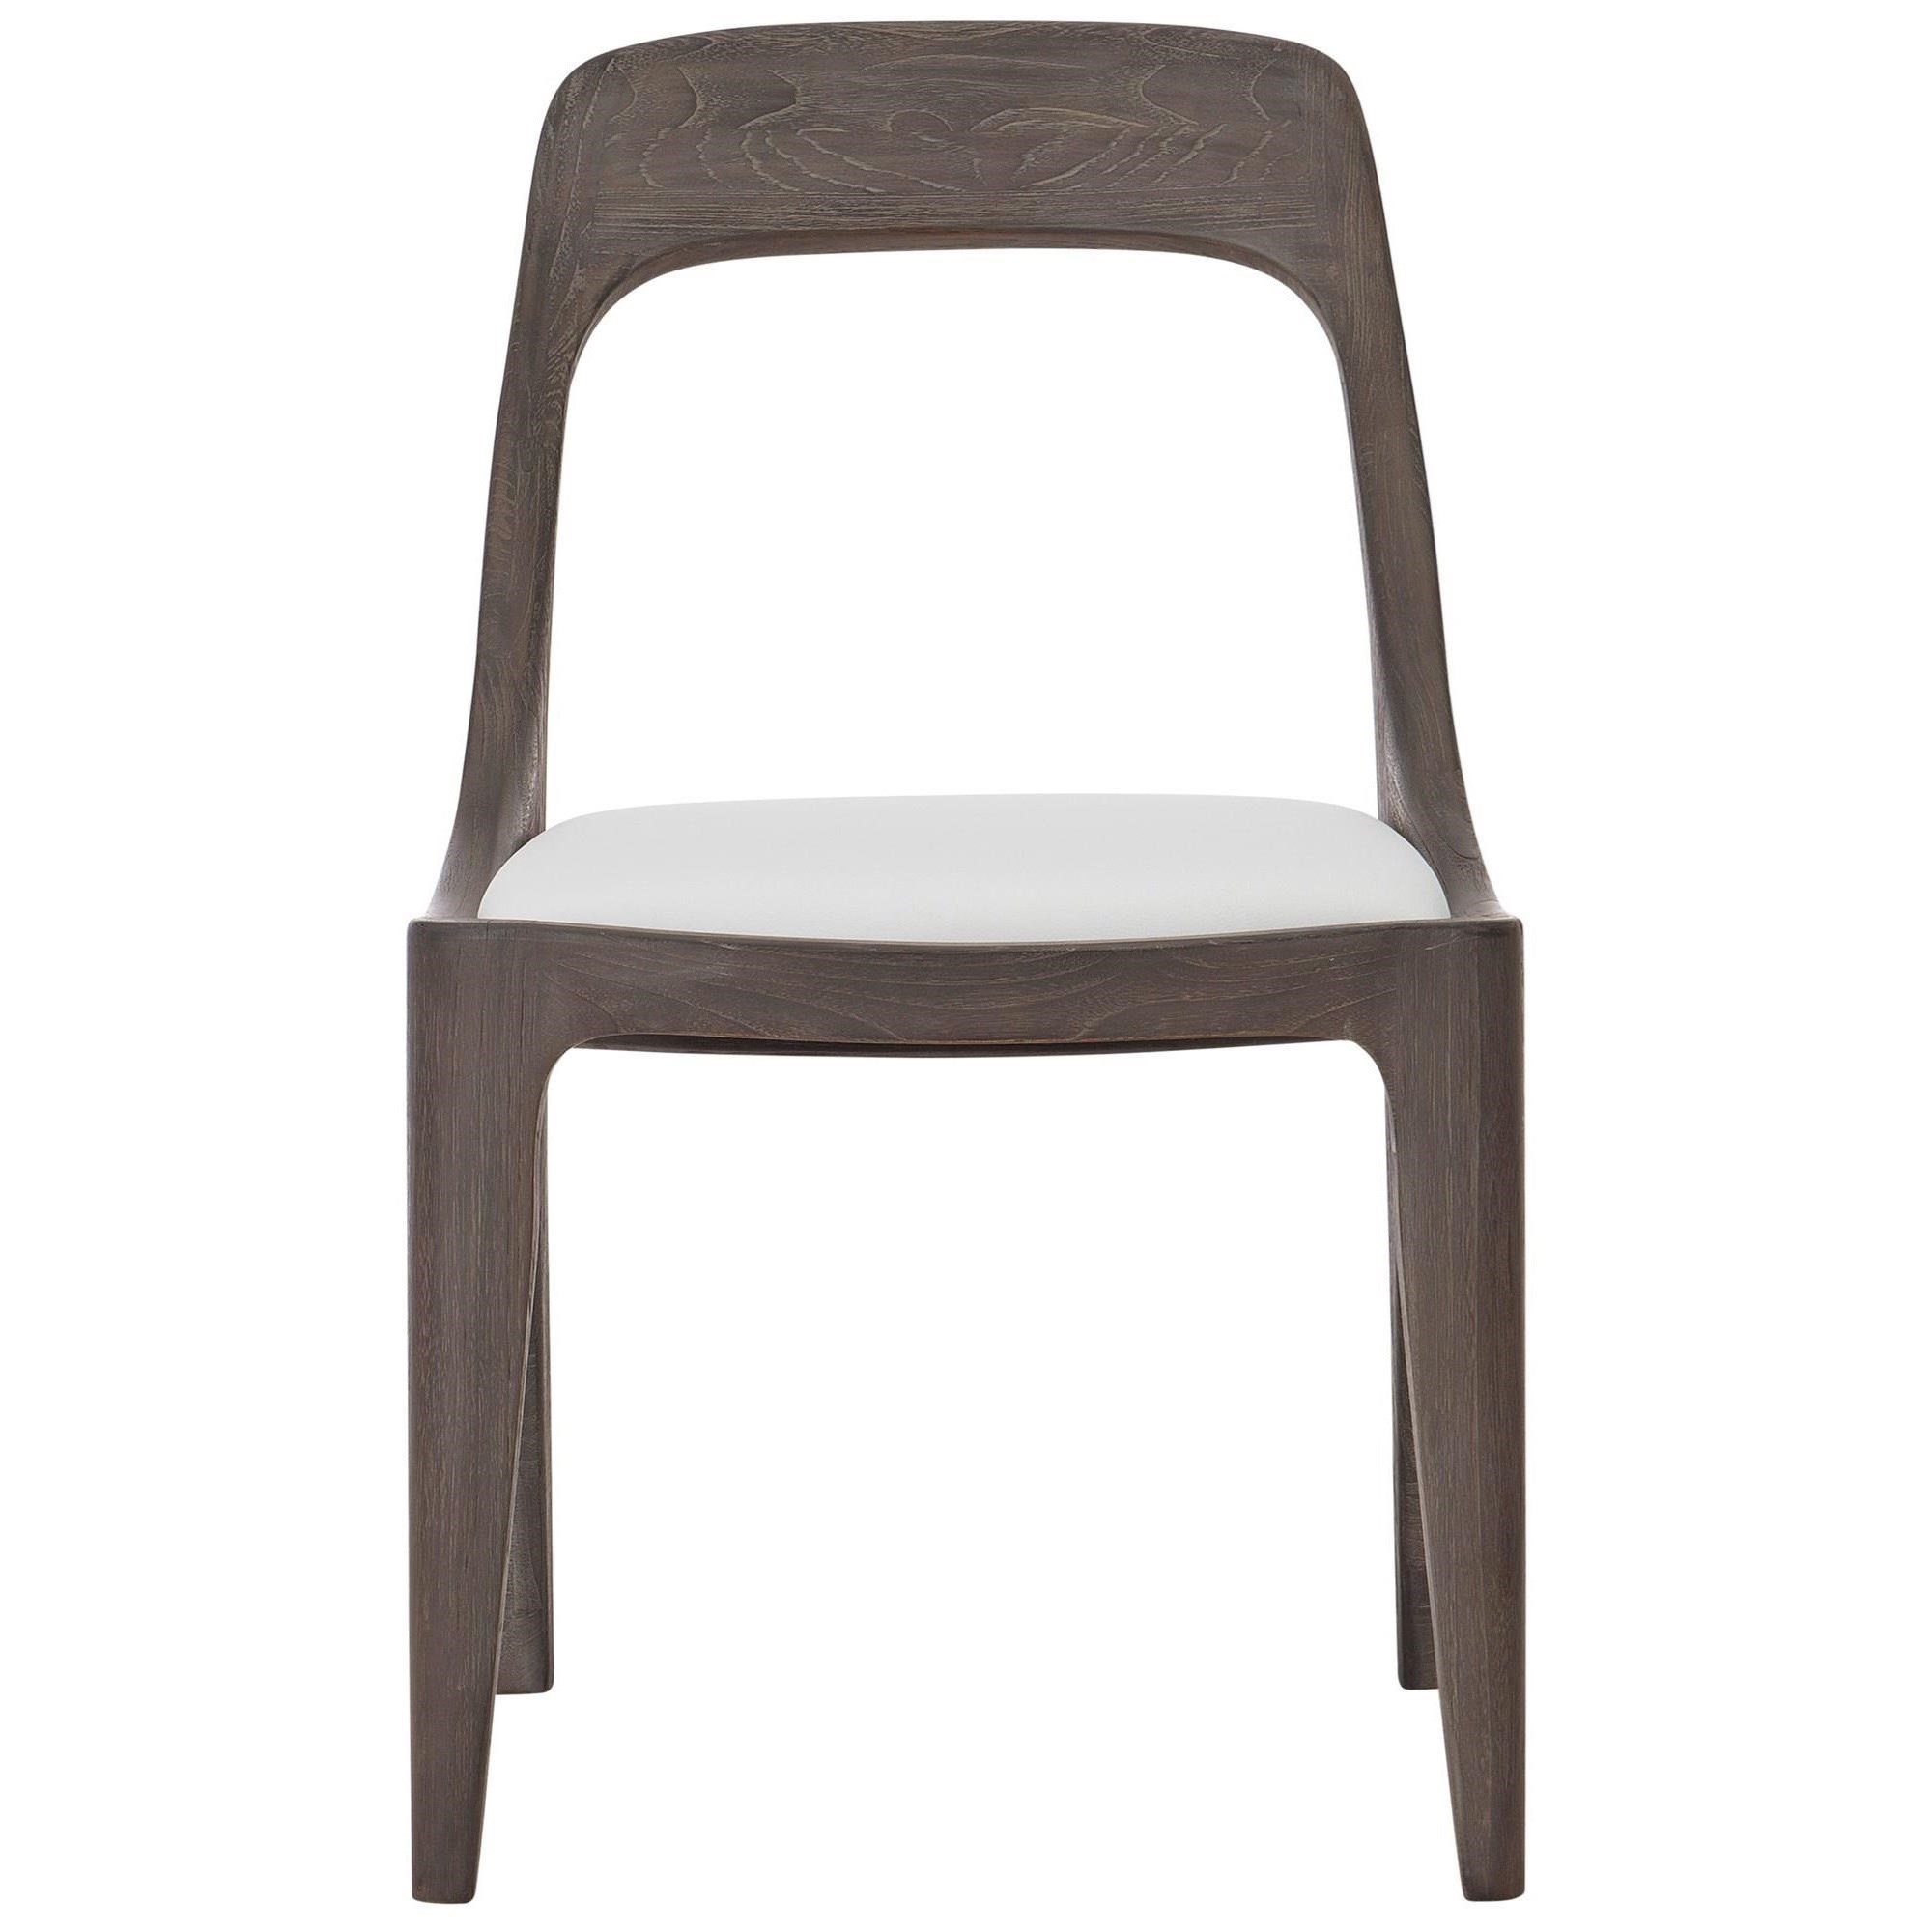 Exteriors - Corfu Outdoor Side Chair at Williams & Kay